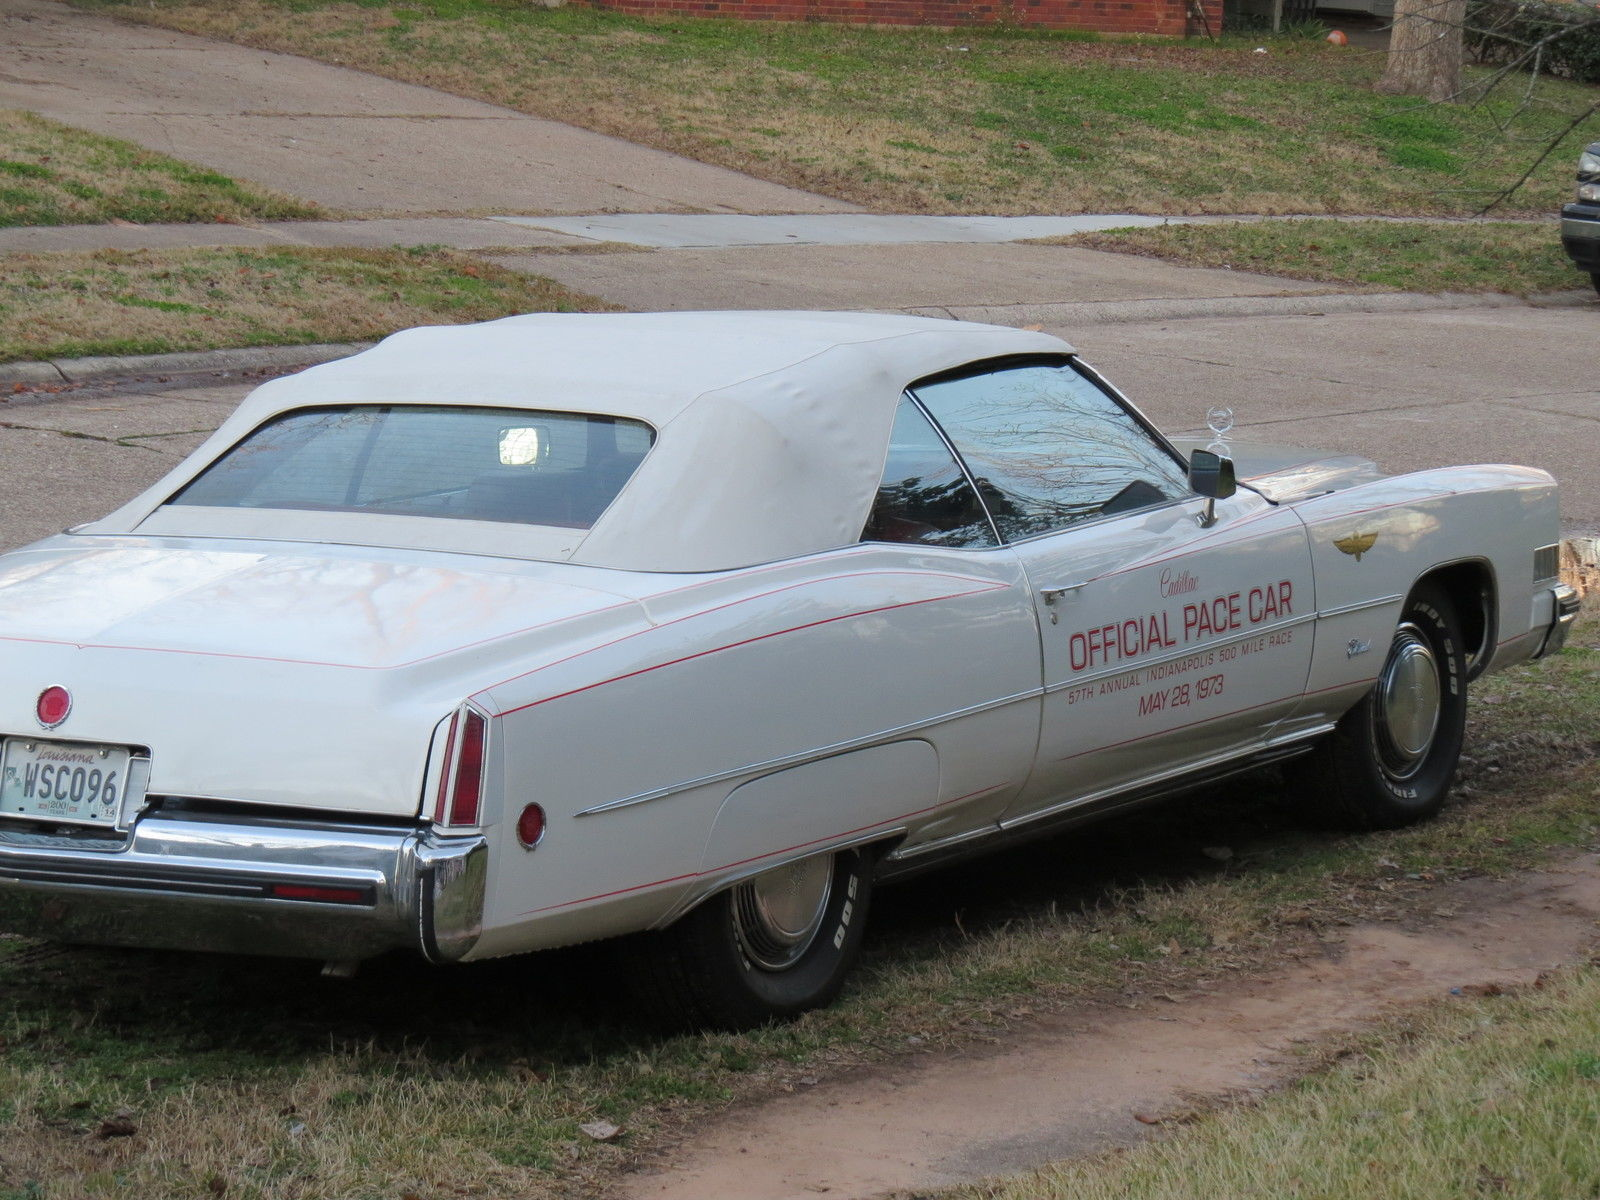 1973 cadillac eldorado convertible indianapolis 500 pace 50 known cars for sale in. Black Bedroom Furniture Sets. Home Design Ideas